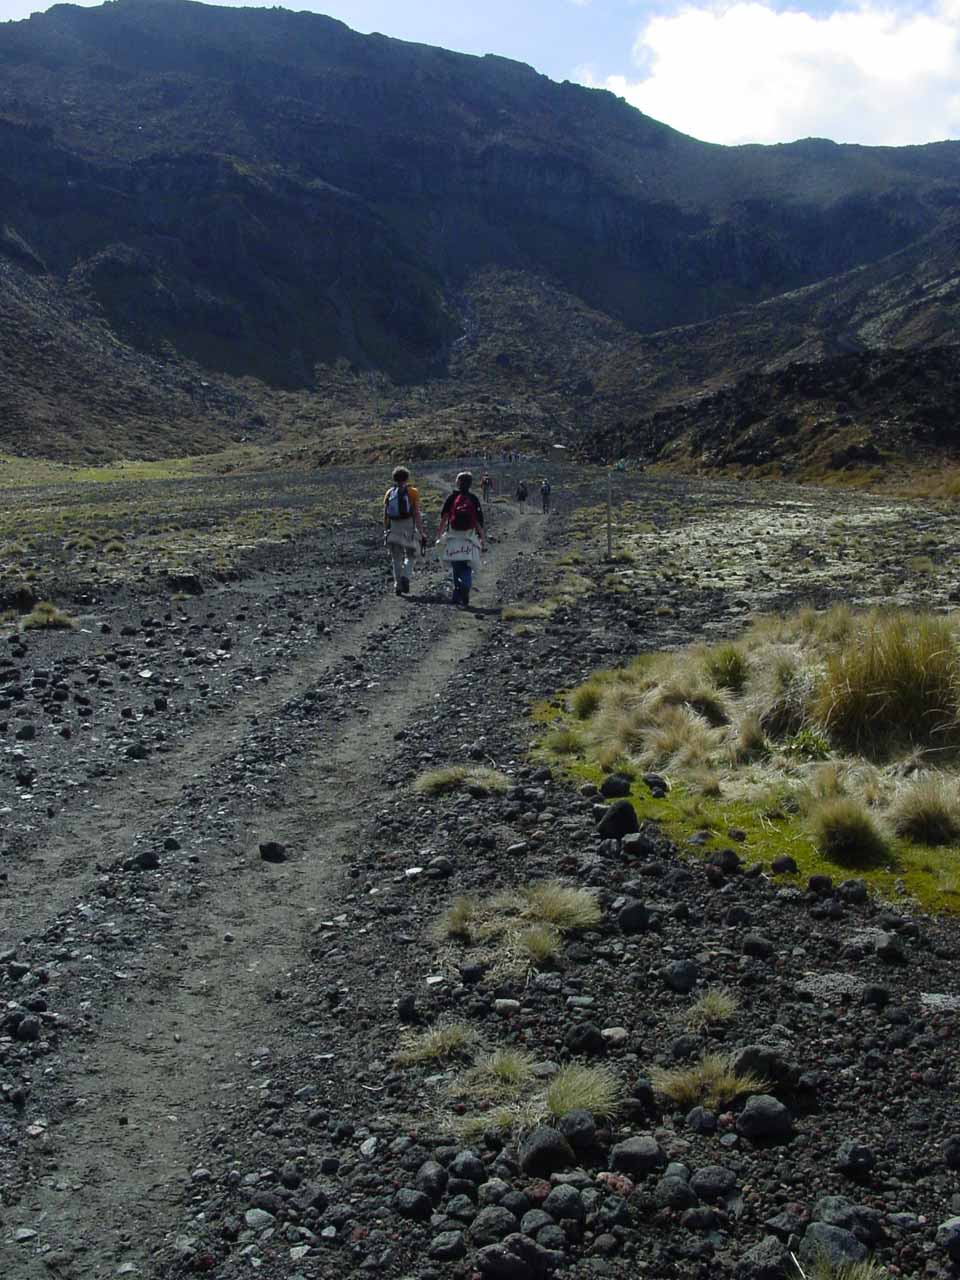 Getting closer to the initial serious climb of the Tongariro Crossing